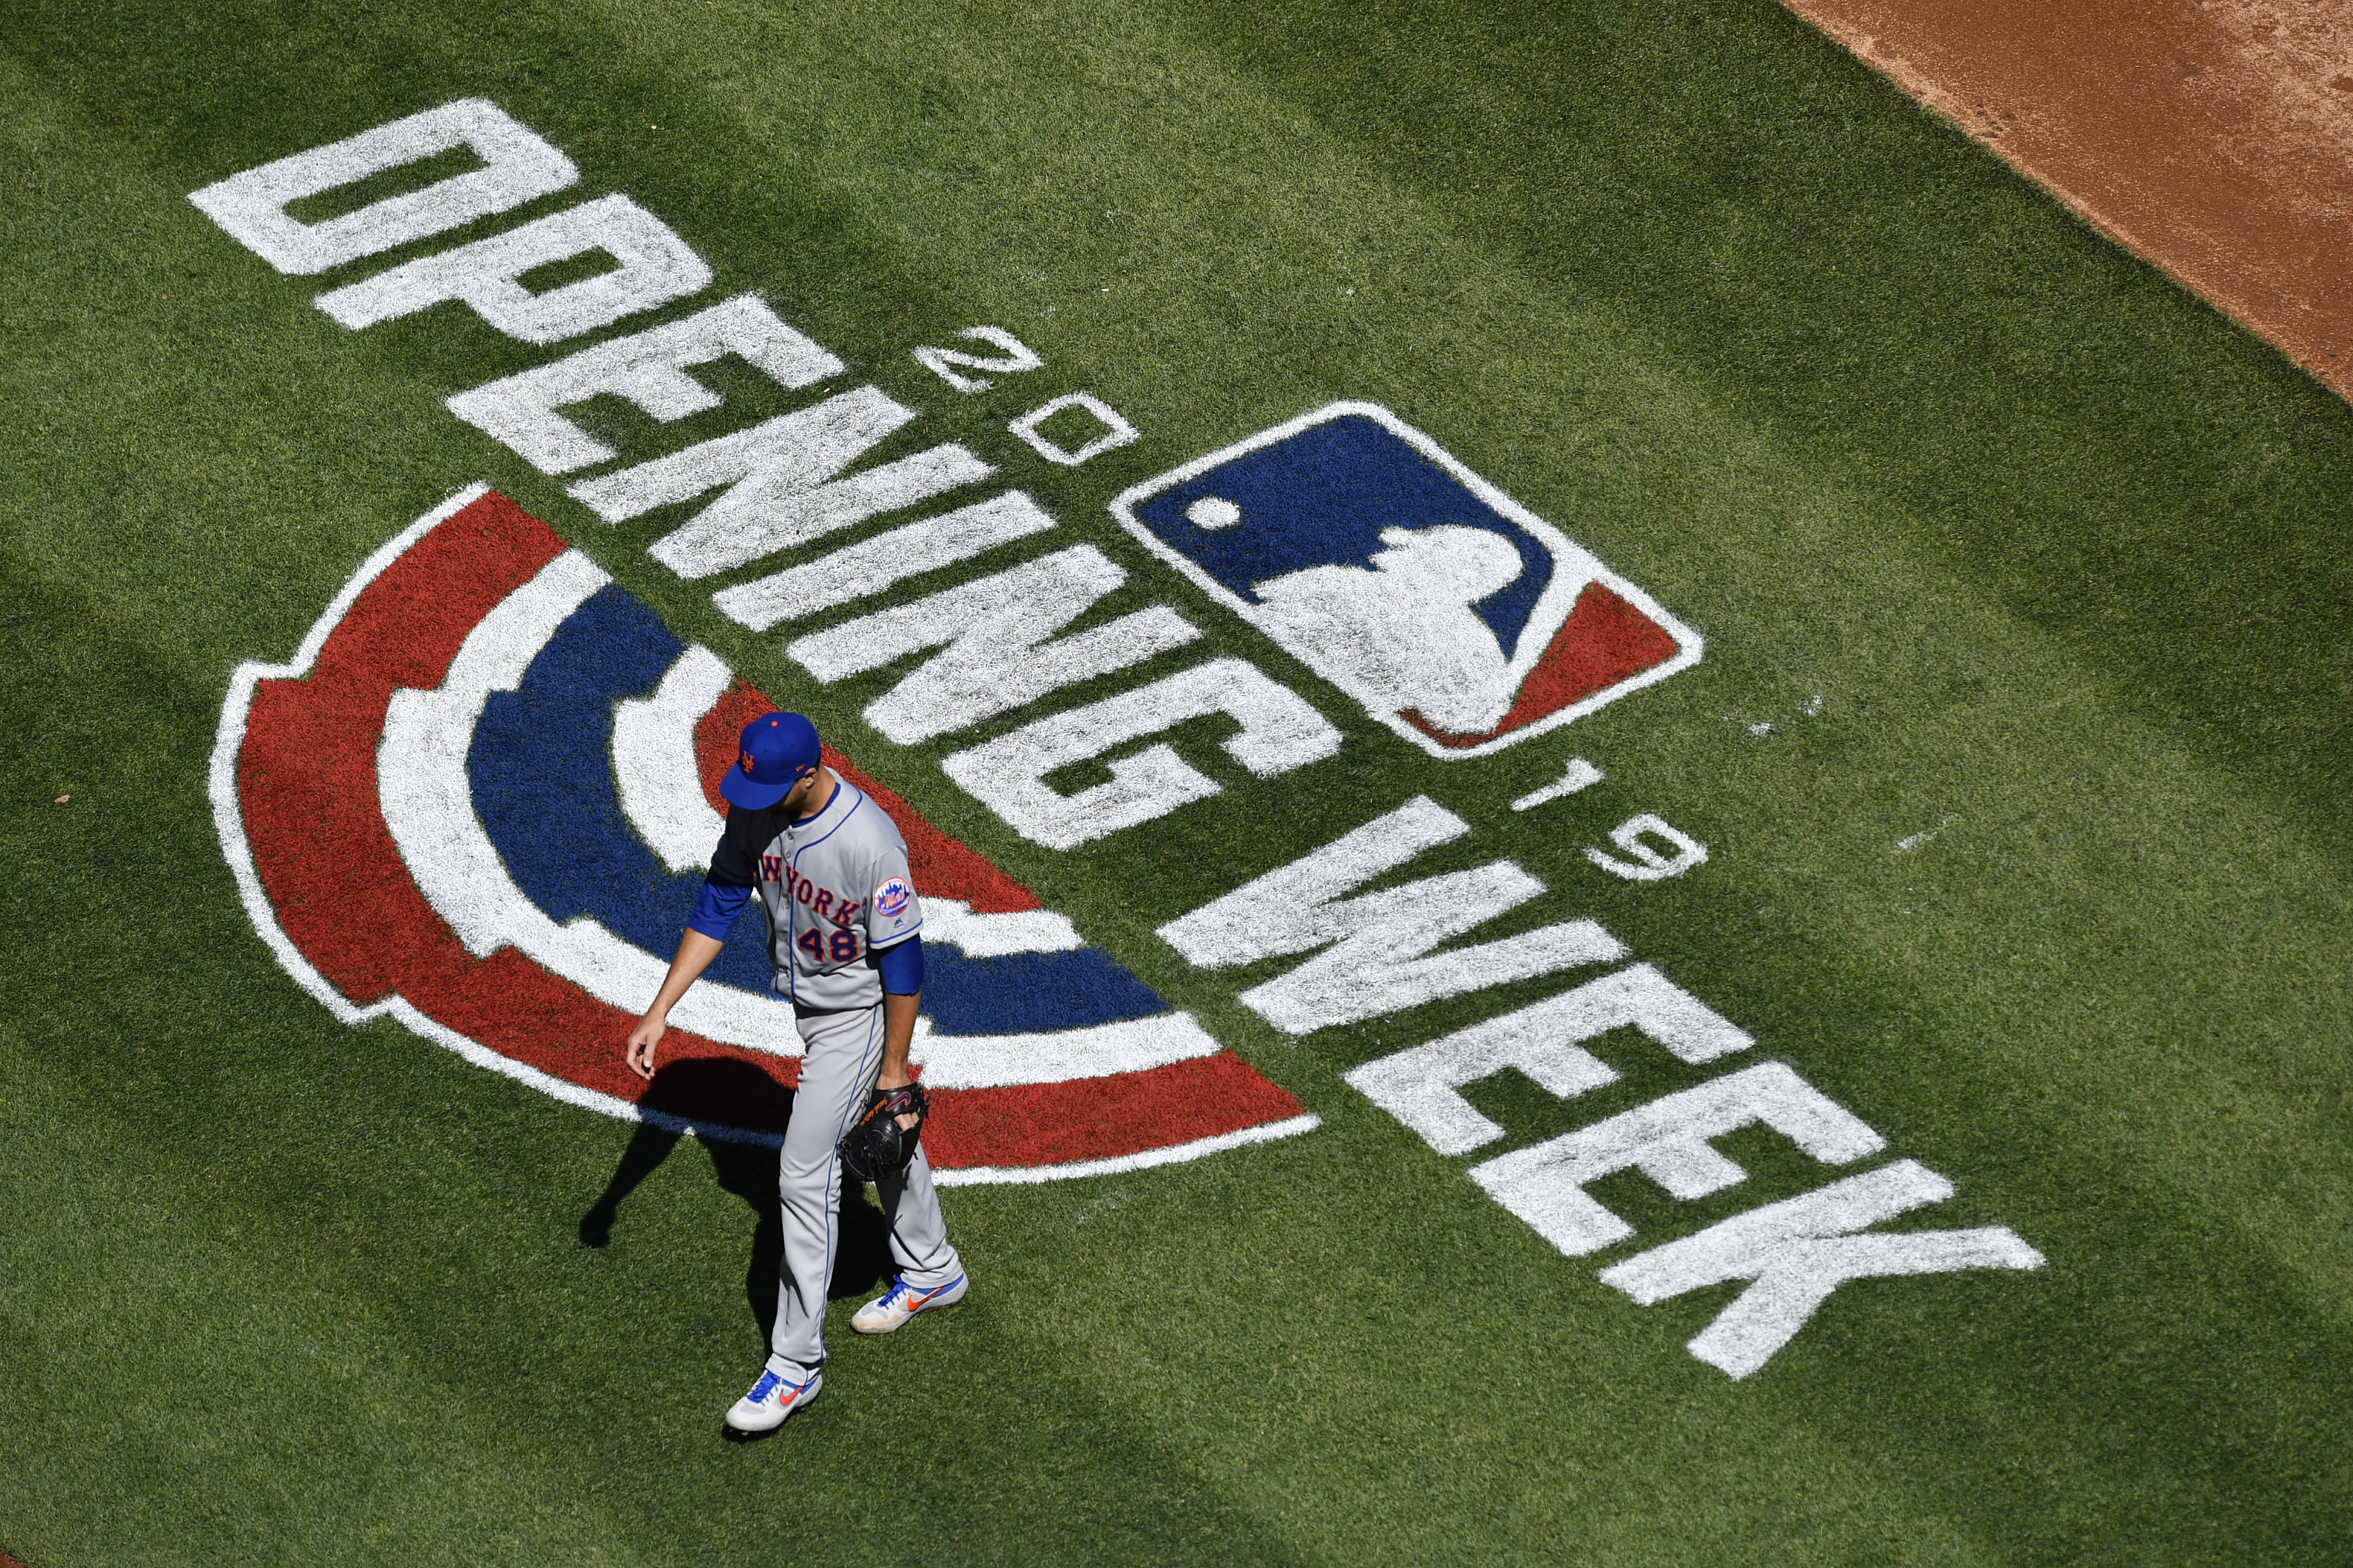 New York Mets: Offseason additions play major role in Opening Day win